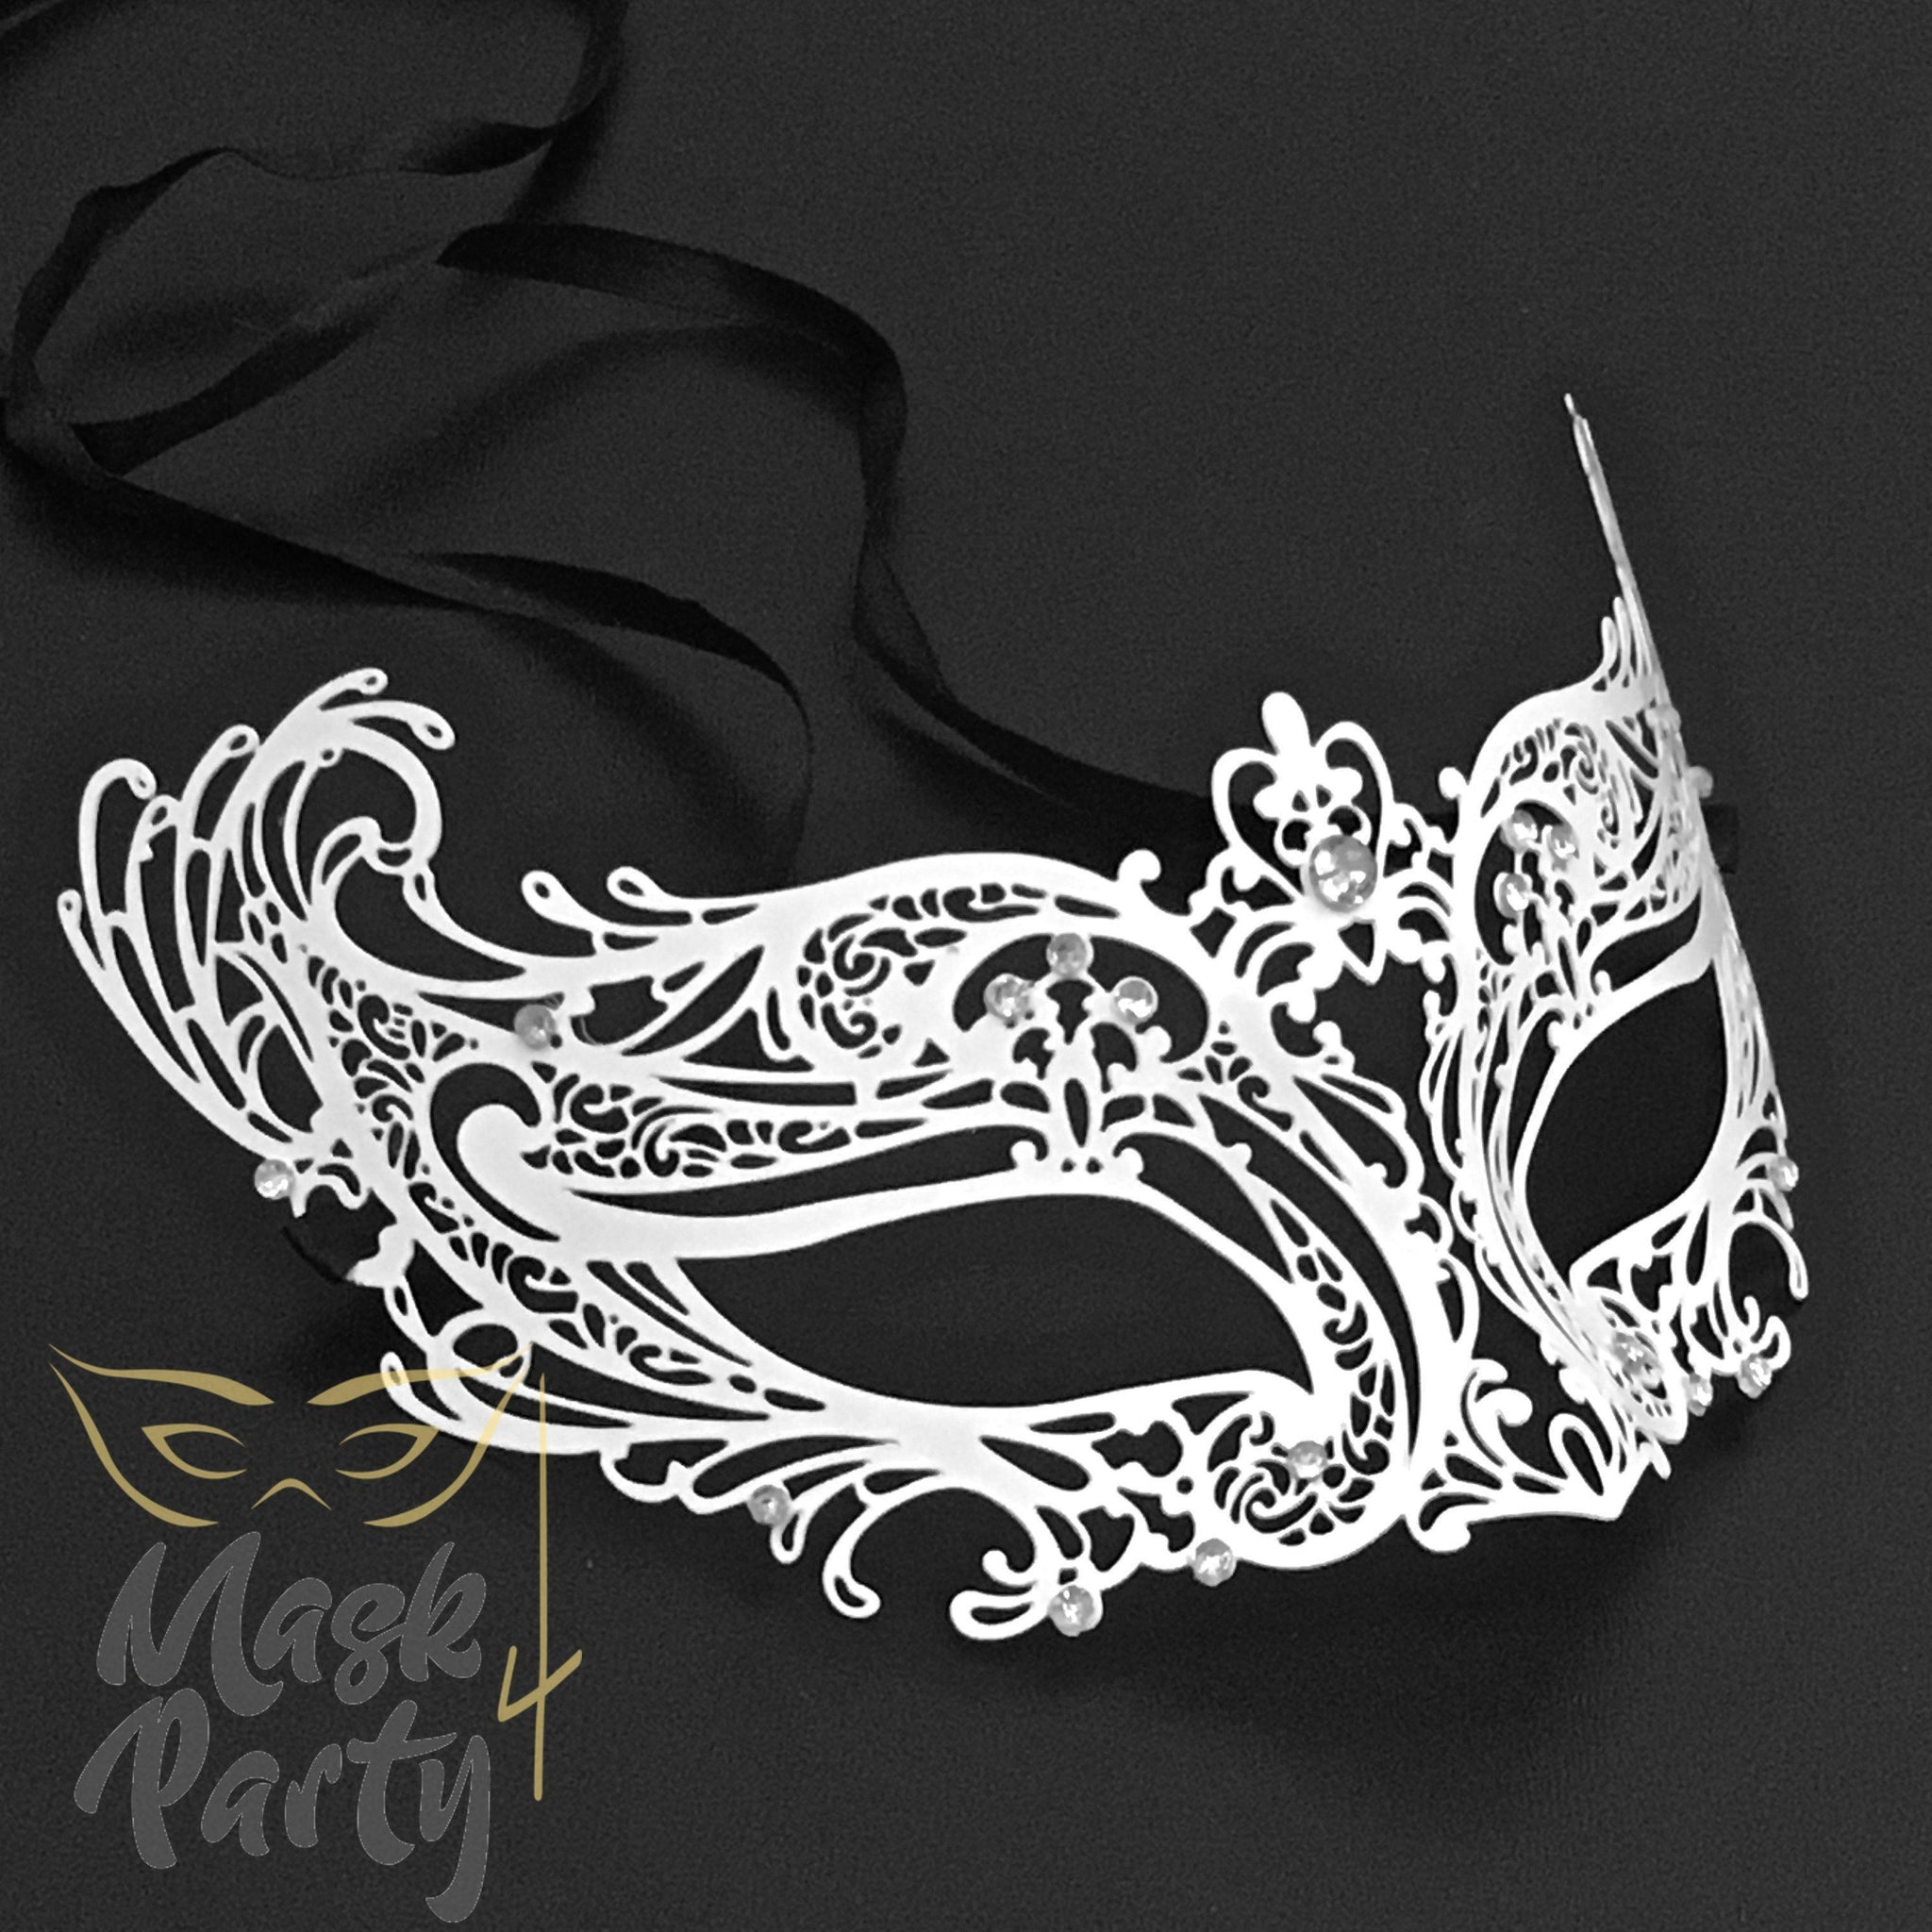 Masquerade Mask - Filigree Crown Metal - White - Mask4Party